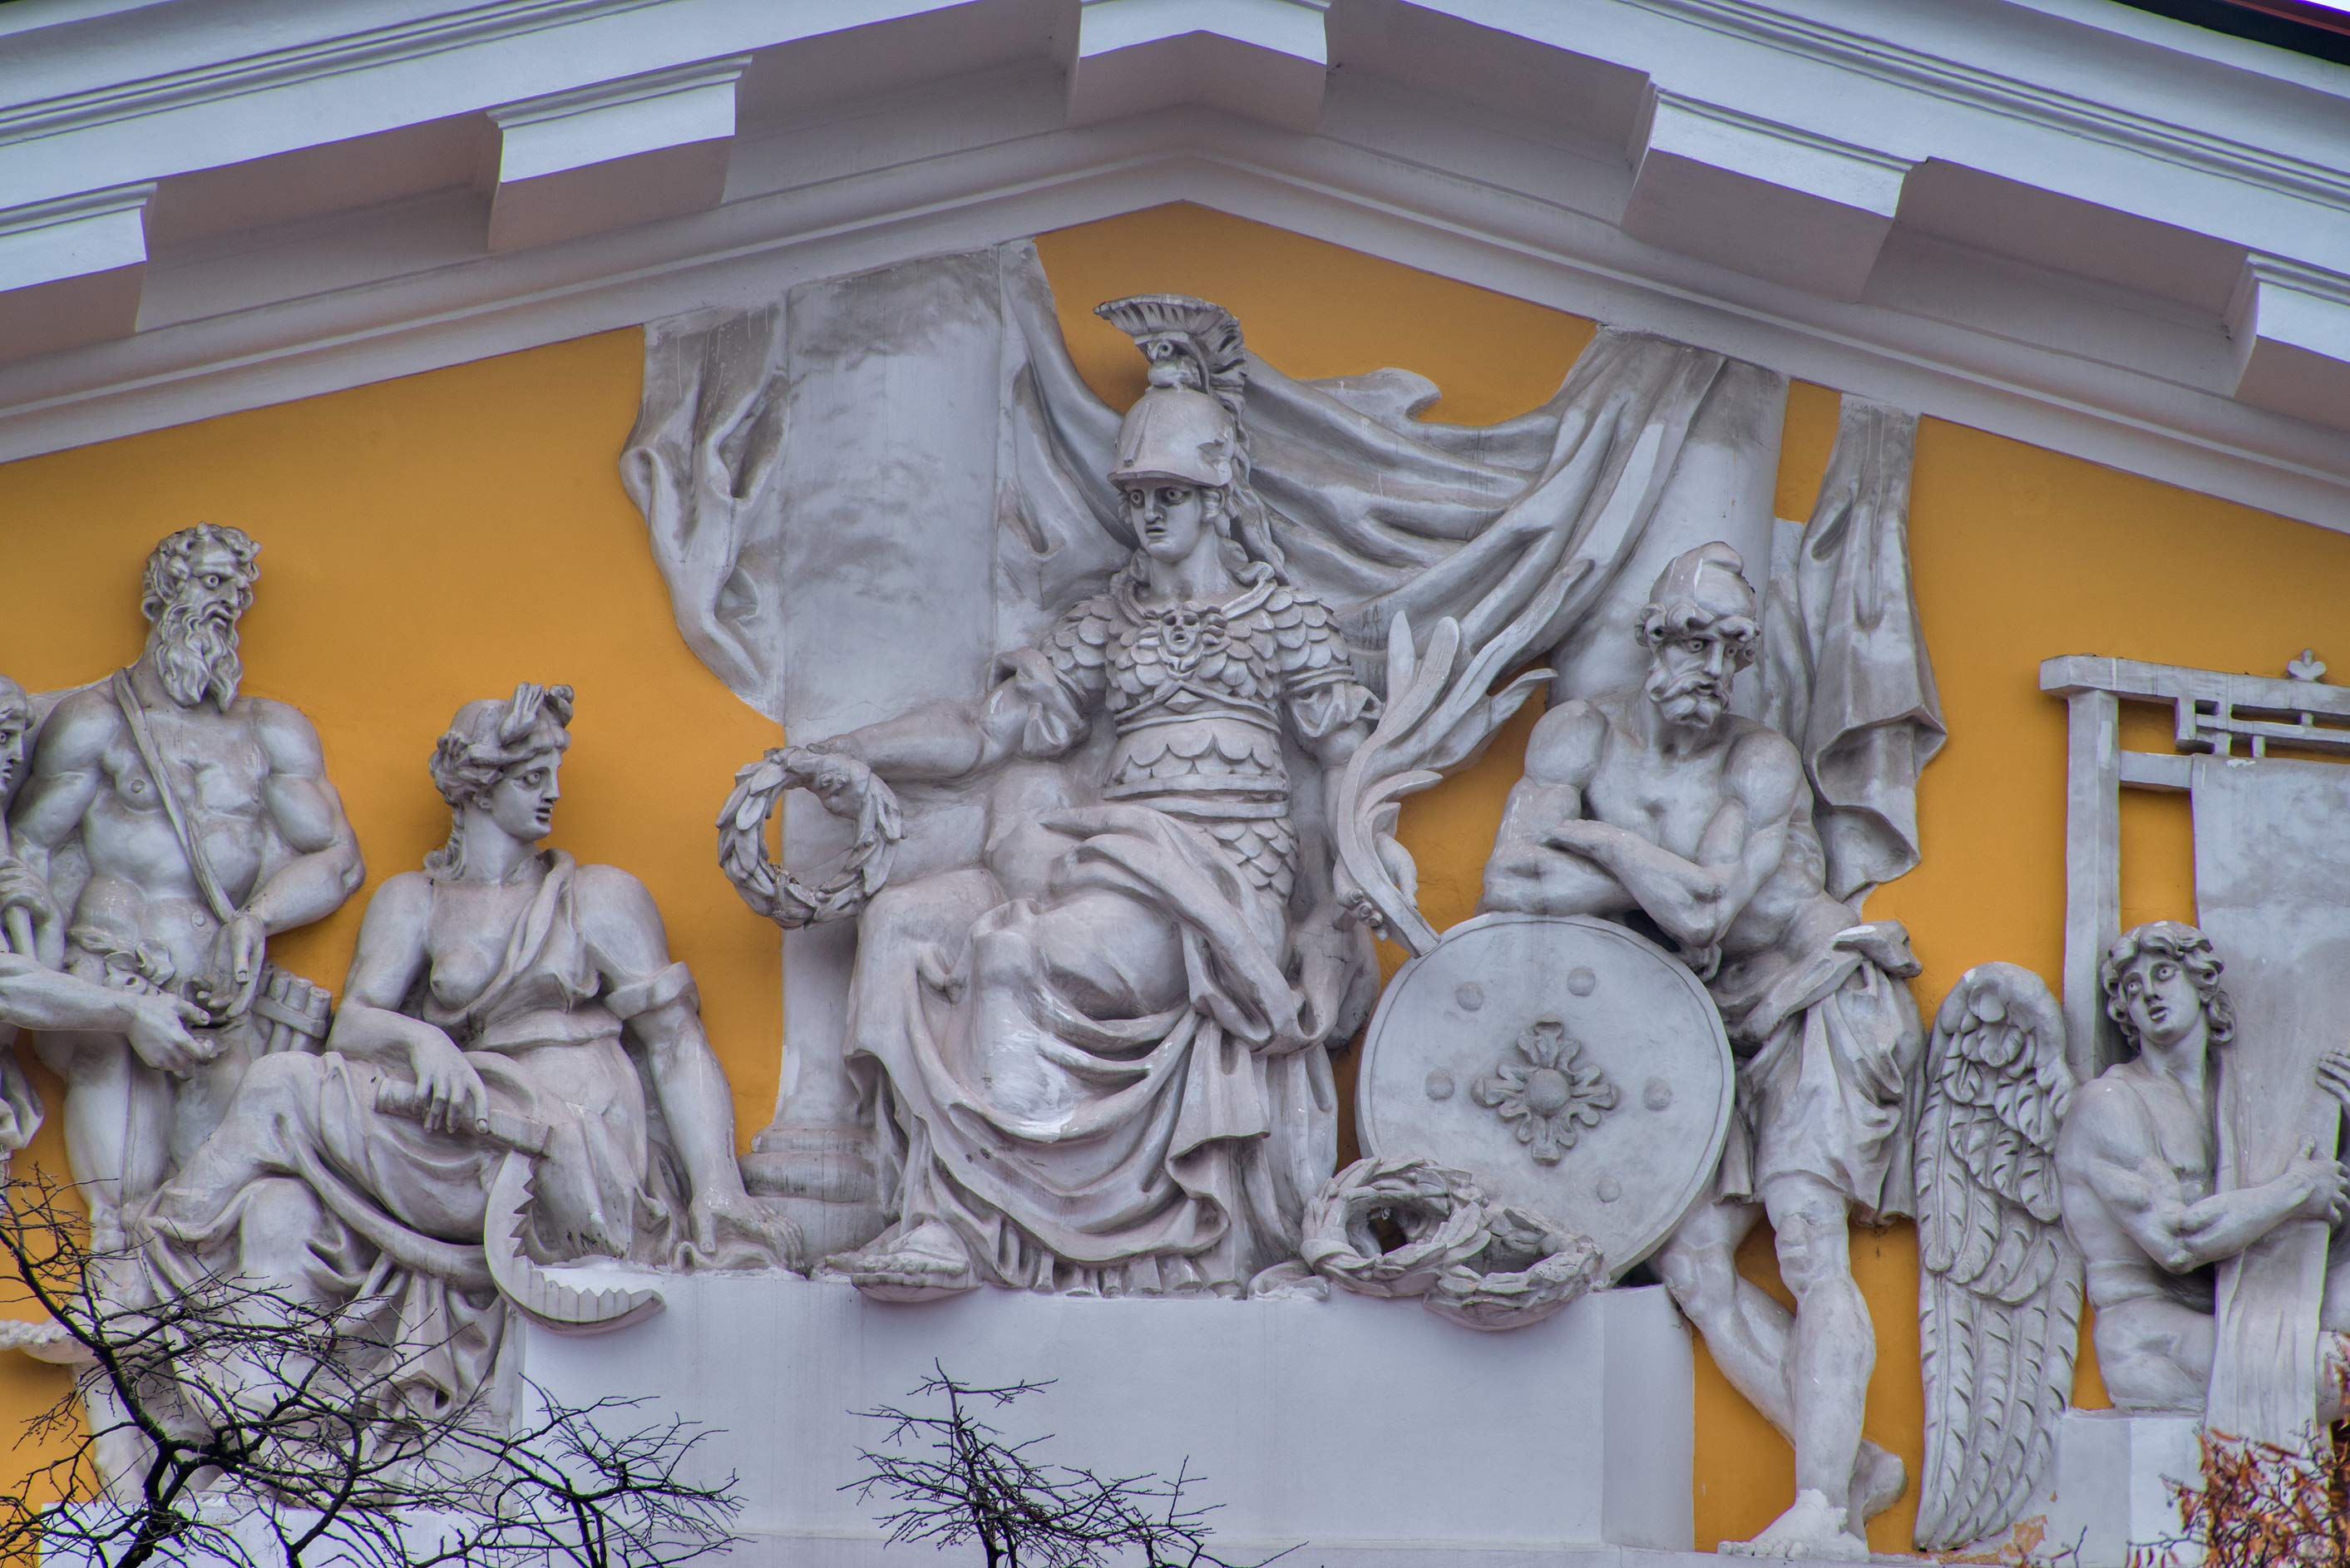 Pediment of Admiralty with figures of mythical heroes. St.Petersburg, Russia